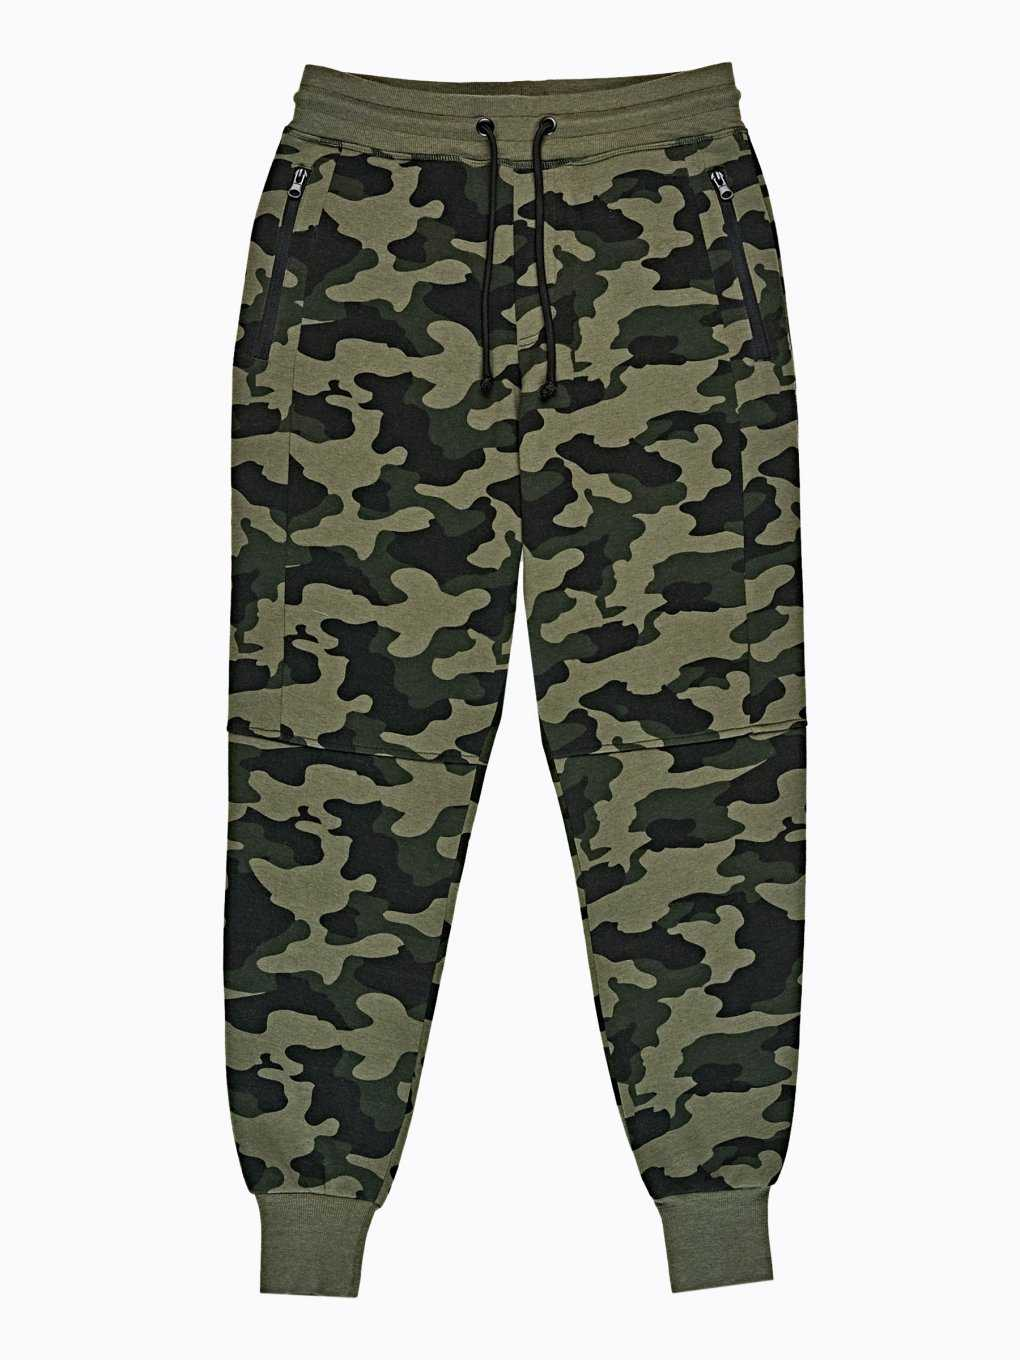 CAMO PRINT SWEATPANTS